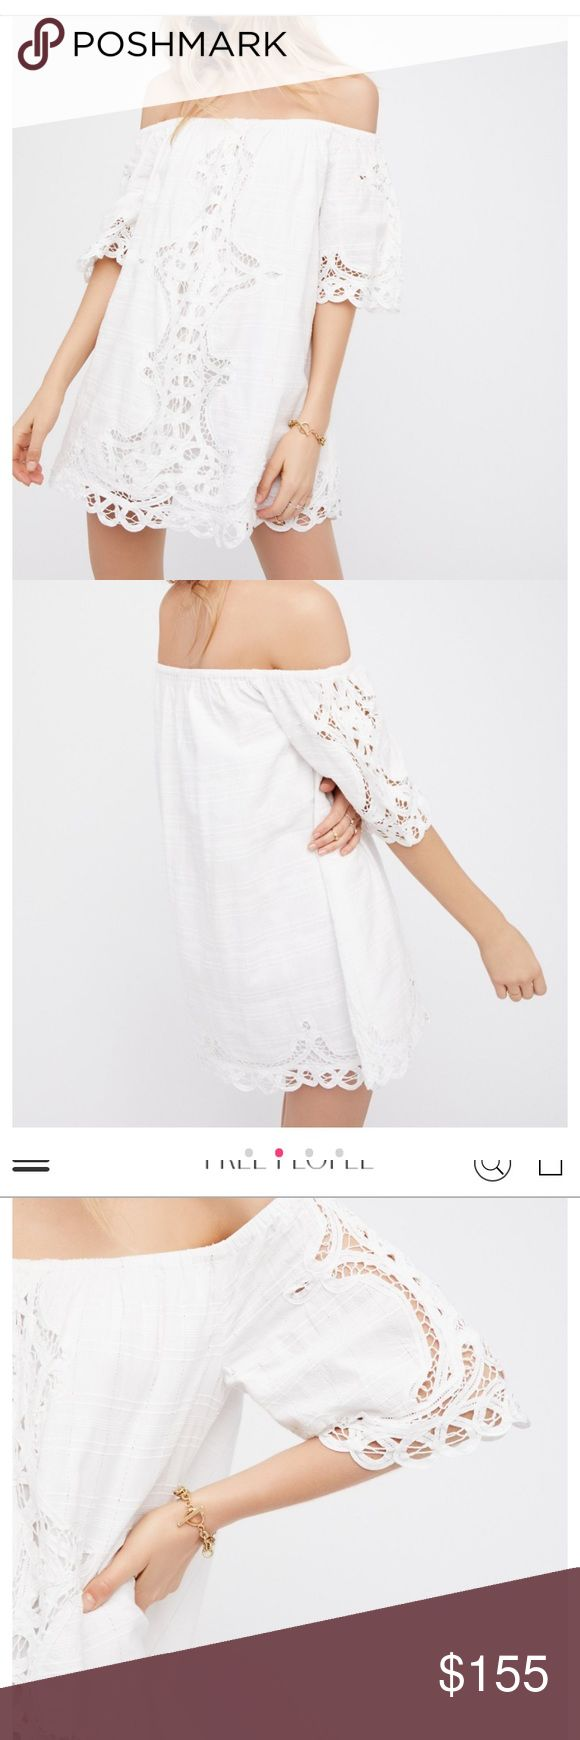 White lace free people mini dress Battenburg free people lace dress size large. Stunning Free People off the shoulder mini. I wore once to a white party and had professionally cleaned. I did not love the dress on me as I hate off the shoulder but I needed a white dress for the event. I paid $168 before taxes and shipping. Perfect for bridal rehearsal or going away dress Free People Dresses Mini